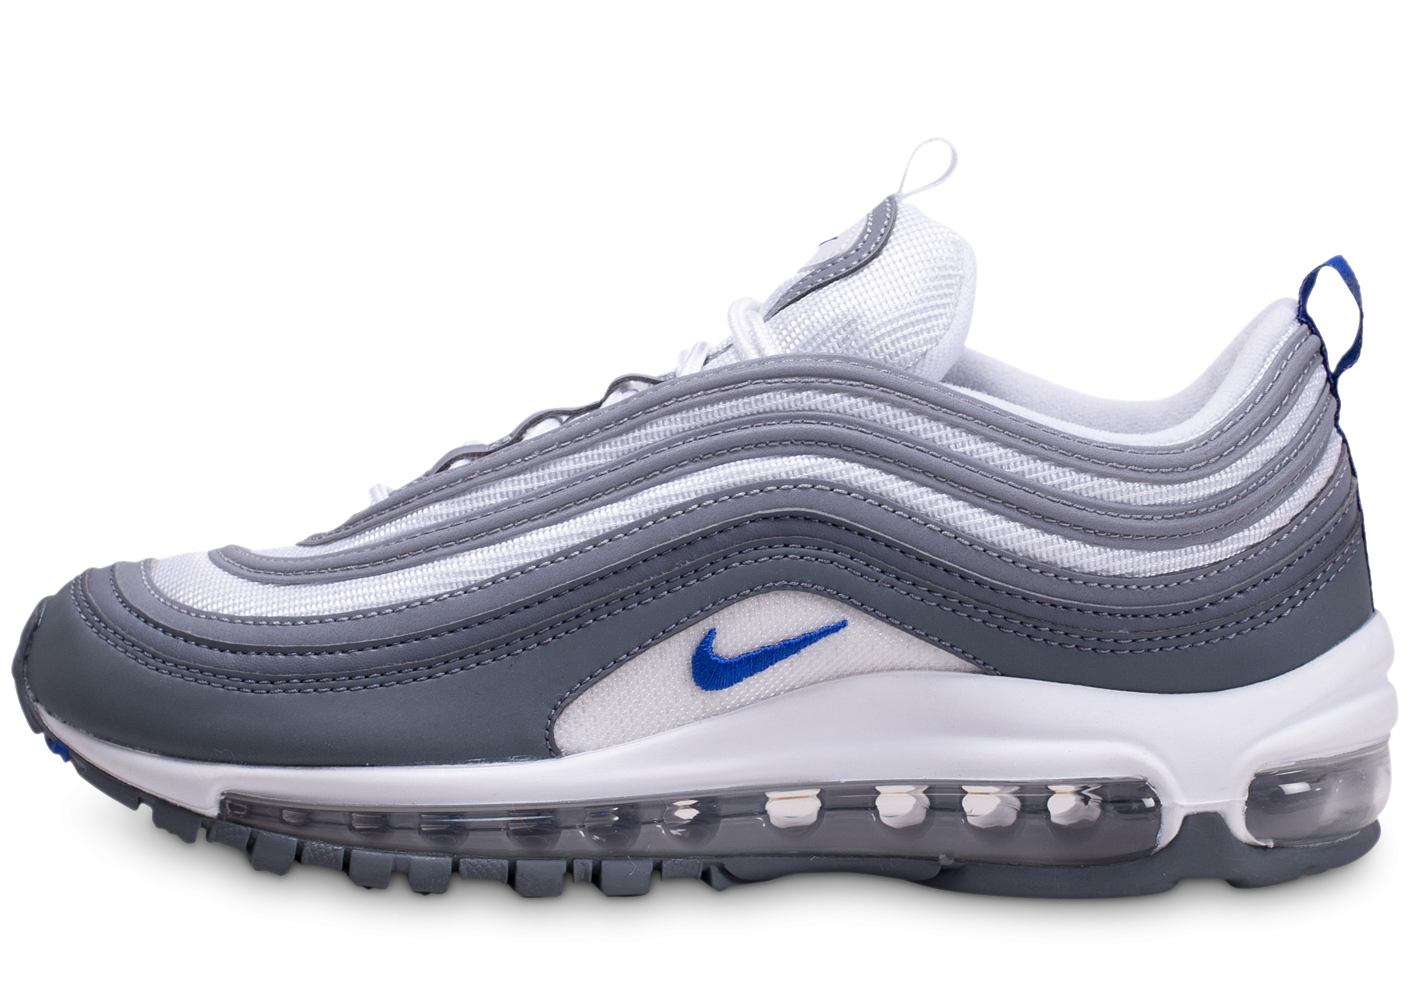 Nike Air Max 97 gris bleu royal